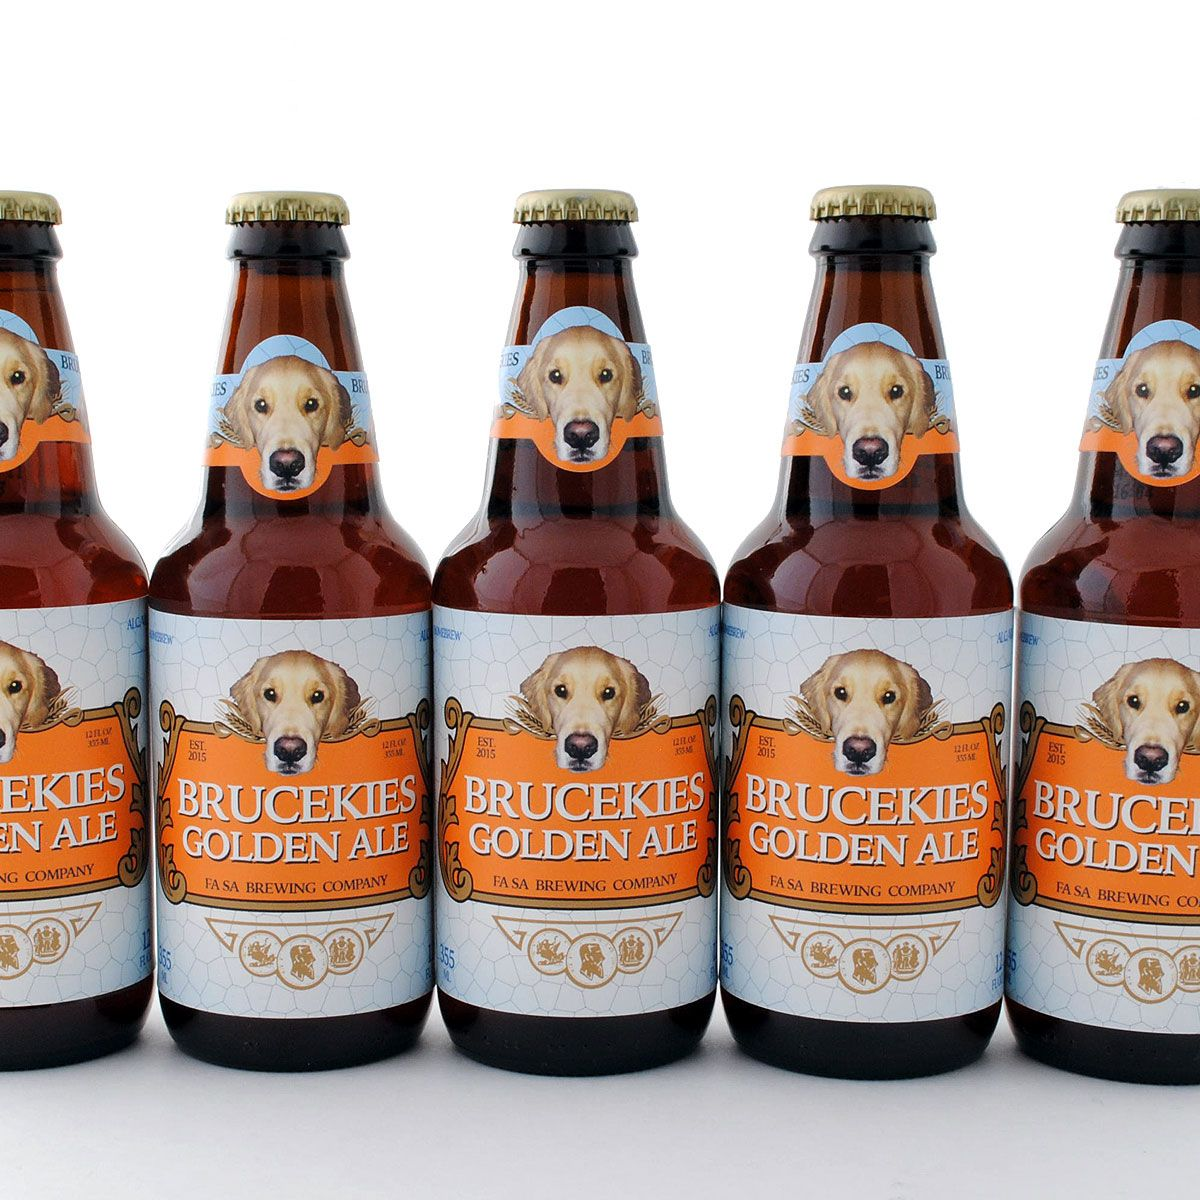 Craft brewers can now make matching neck labels and bottle